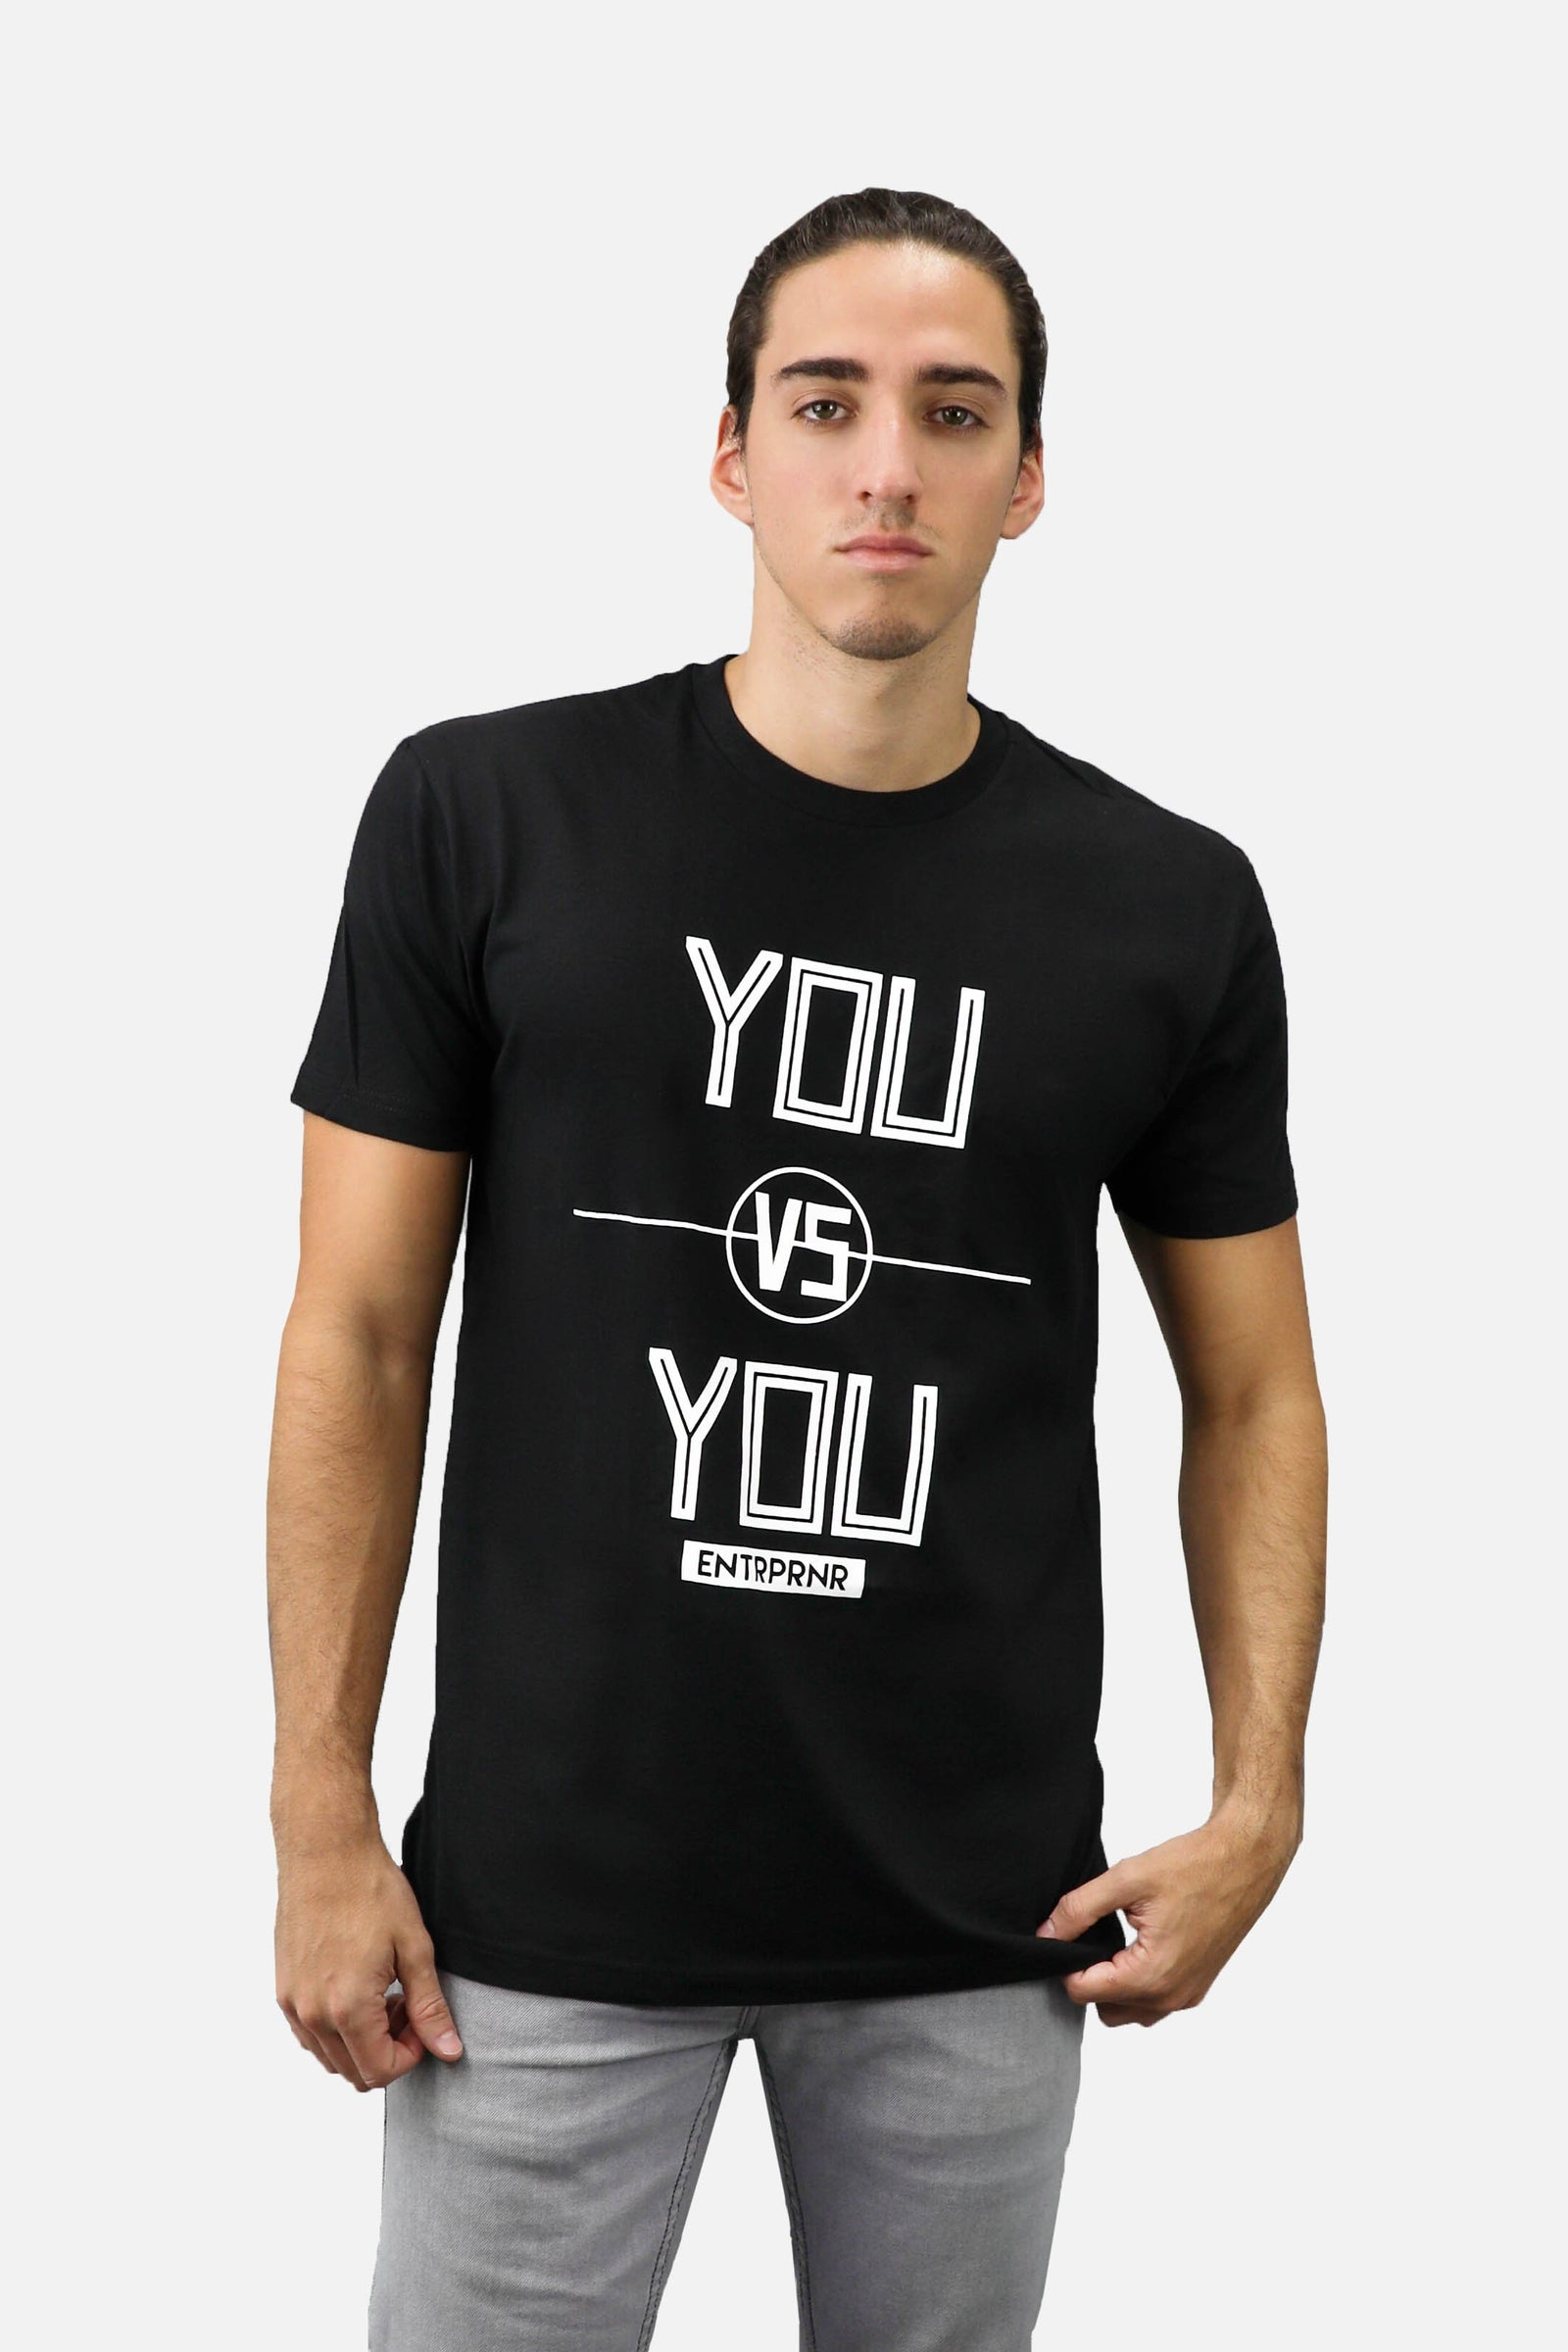 You vs. You ENTRPRNR Tee – Black - ENTRPRNR® | The Entrepreneur's Clothing Brand. | Stagnancy is the Enemy. Action is King.